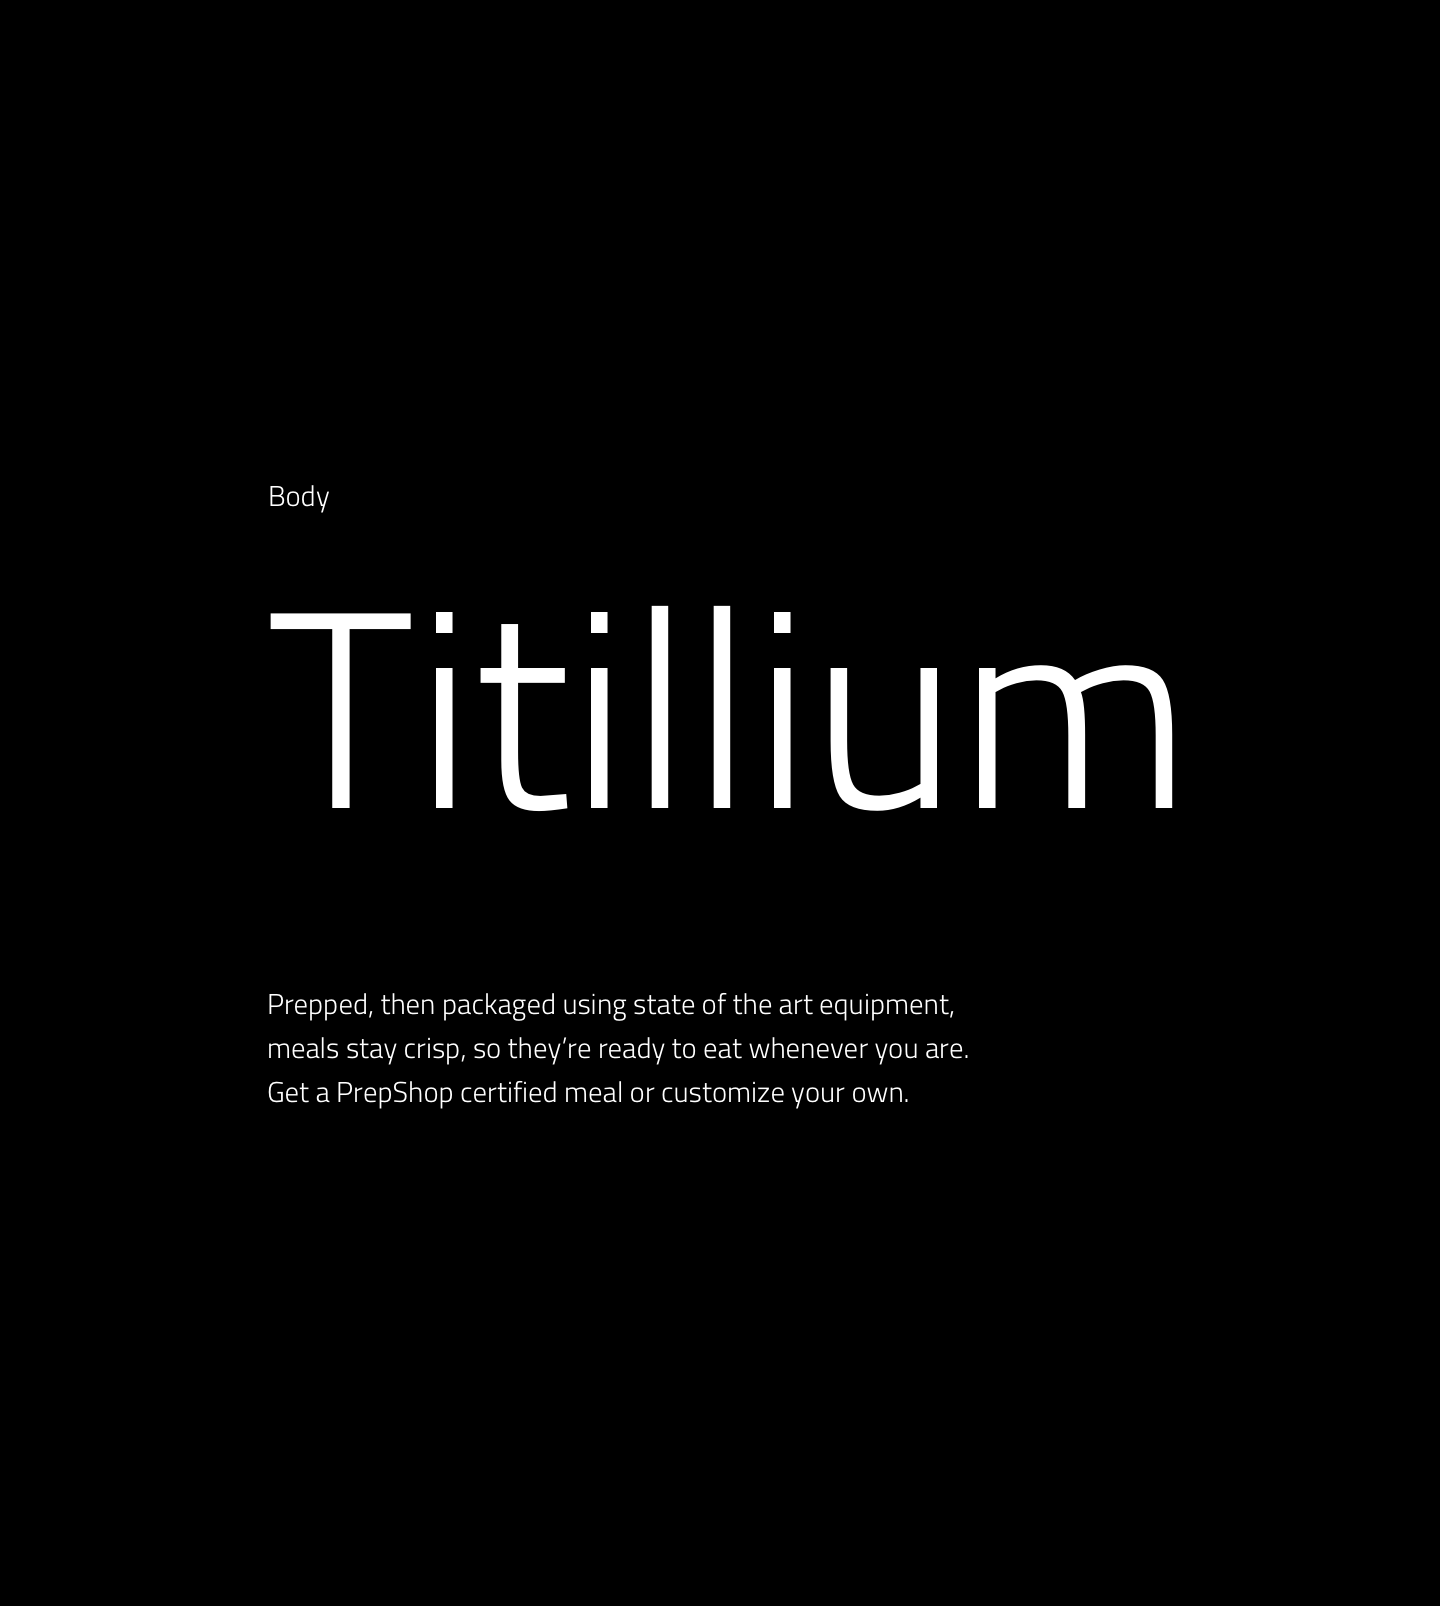 titlium-large-tile2